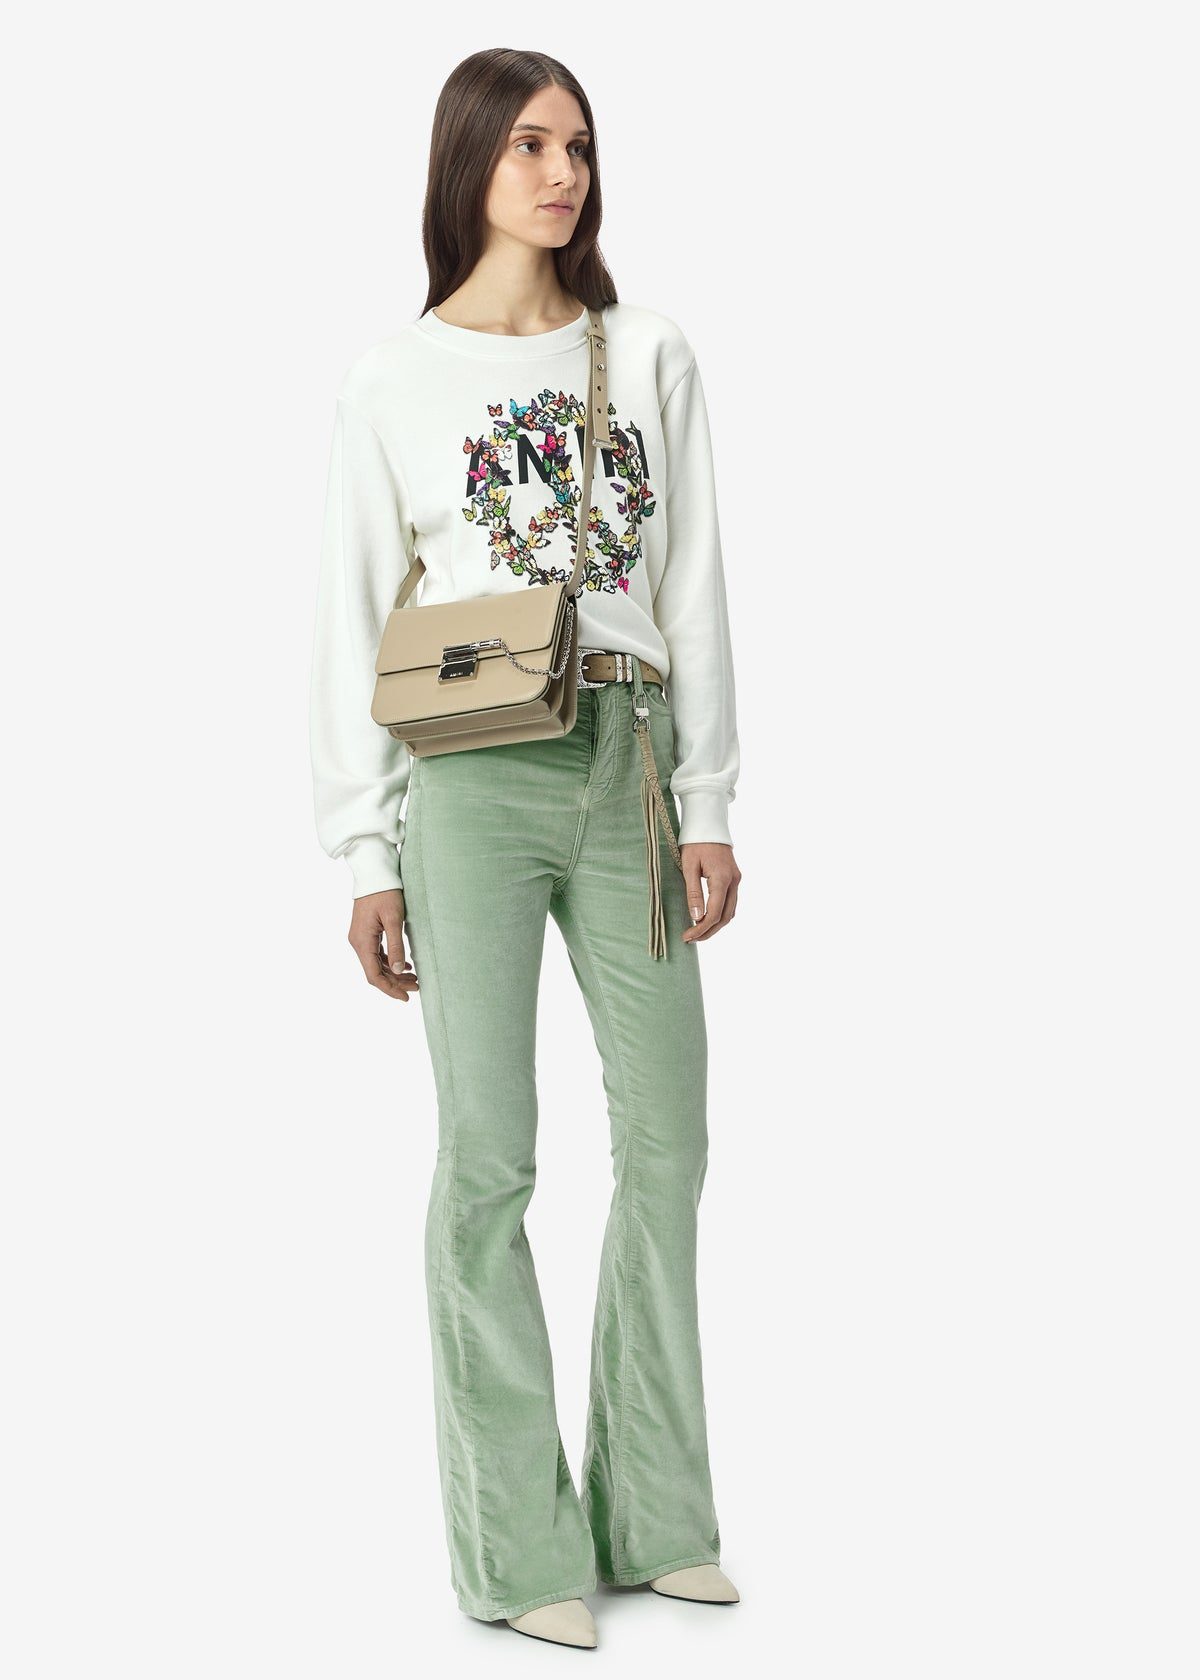 files/SHOT_244_SS20_W_Fleece_AMIRI_Peace_Butterfly_Crew_IVY_FULL_LOOK_A_5657_copy.jpg